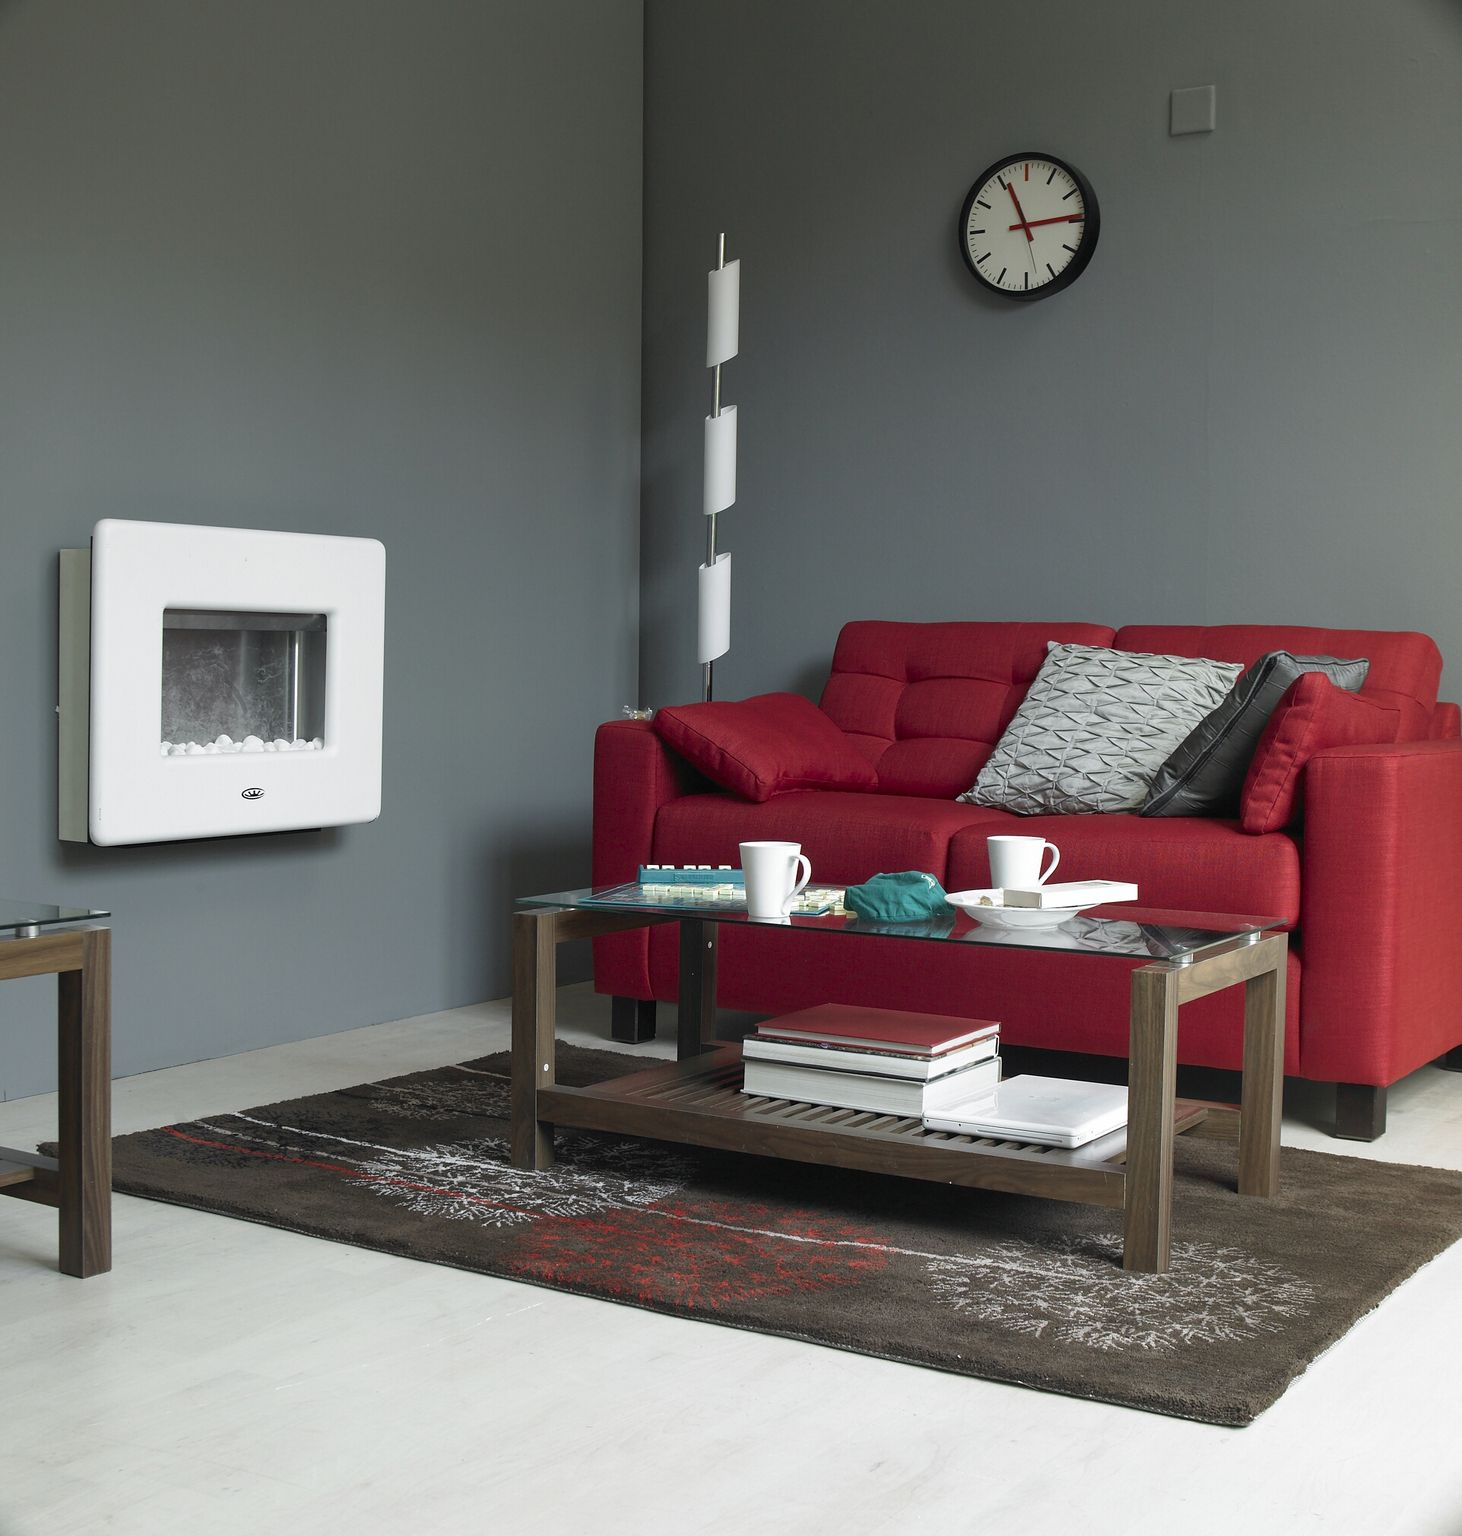 Others small character grey living room design filled by Red and grey sofa